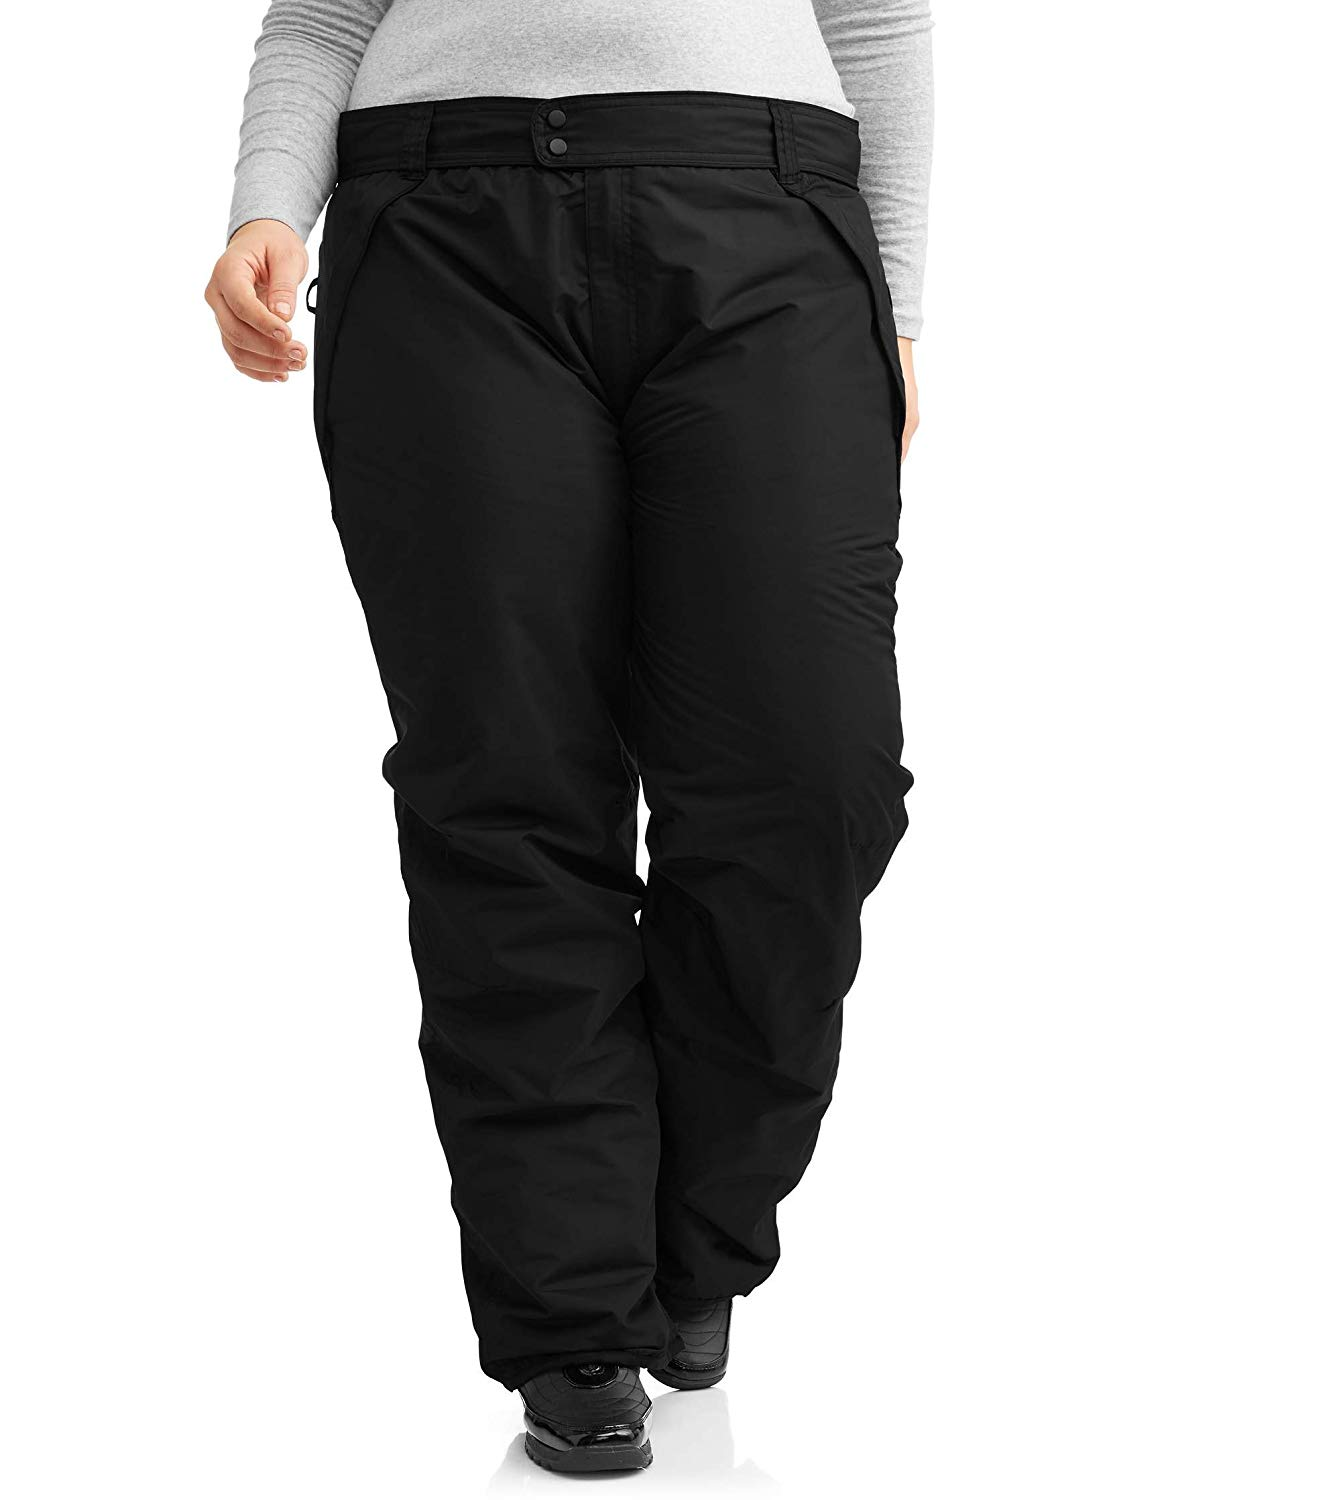 17750e7726c Get Quotations · Iceburg Women s Plus Insulated Pull-On Ski Pants Size XL